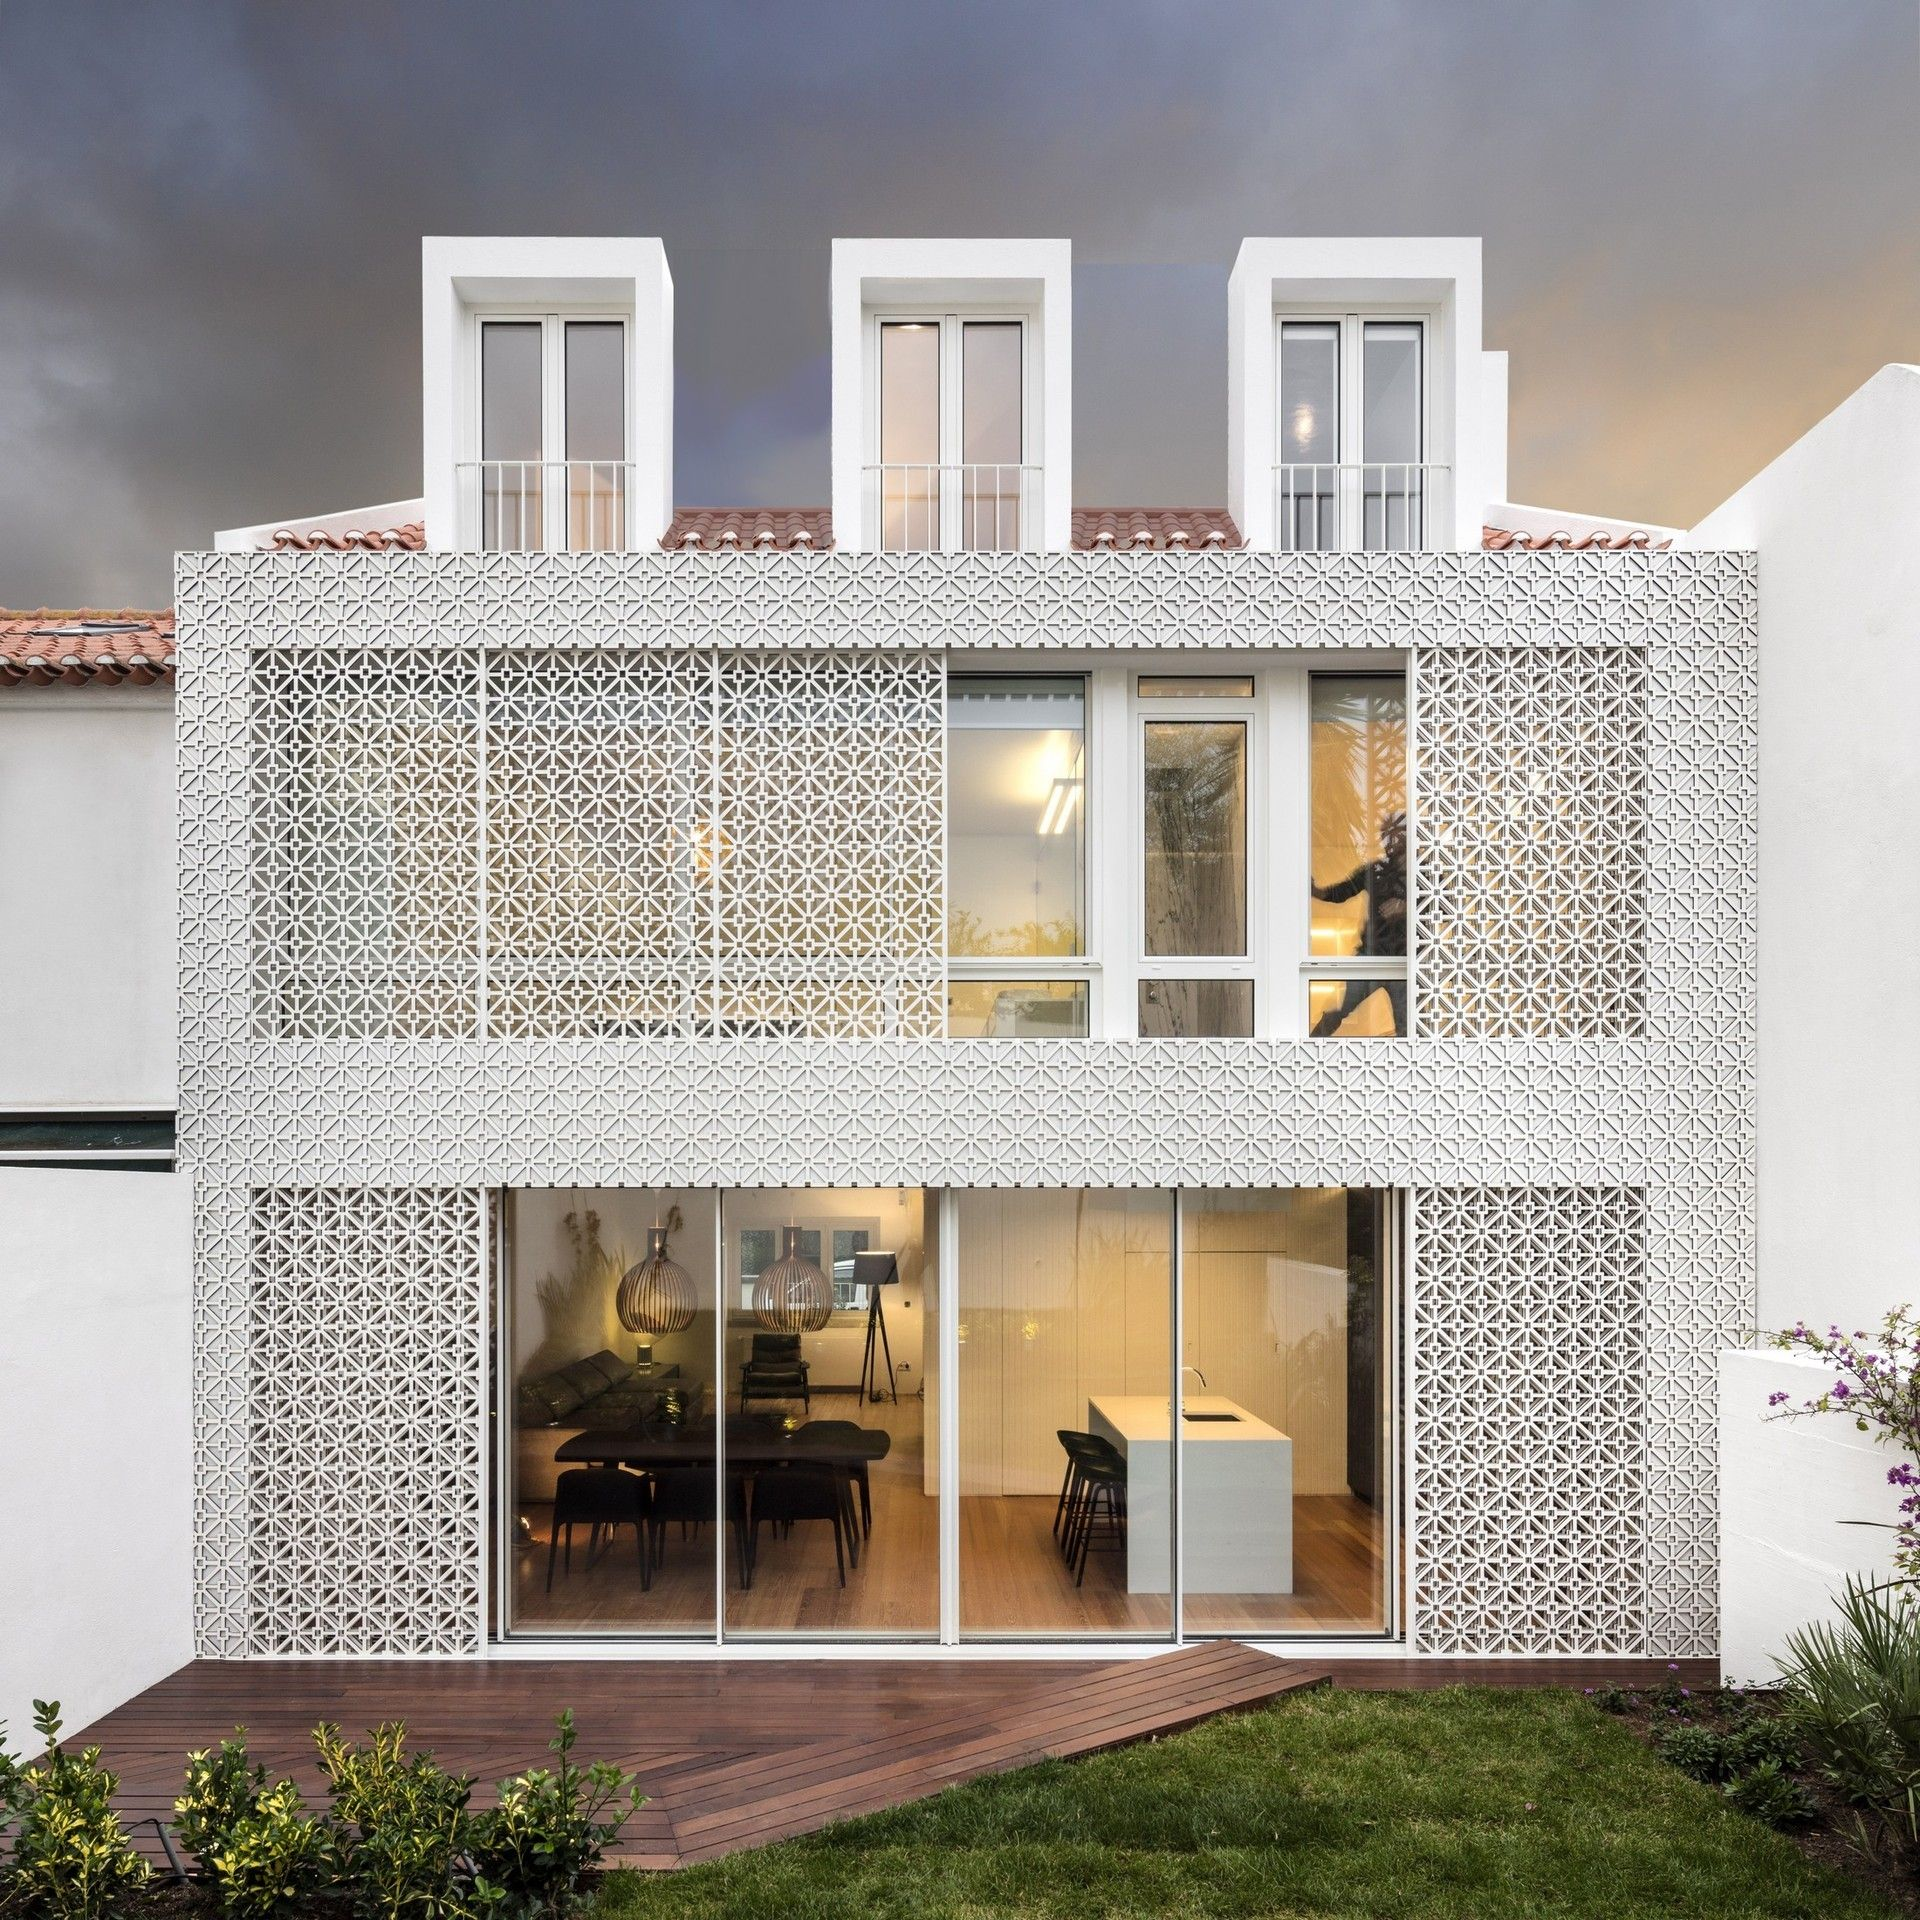 Attractive Gallery Of Material Focus: Expansion Inspired By Portuguese Tiles By João  Tiago Aguiar   1